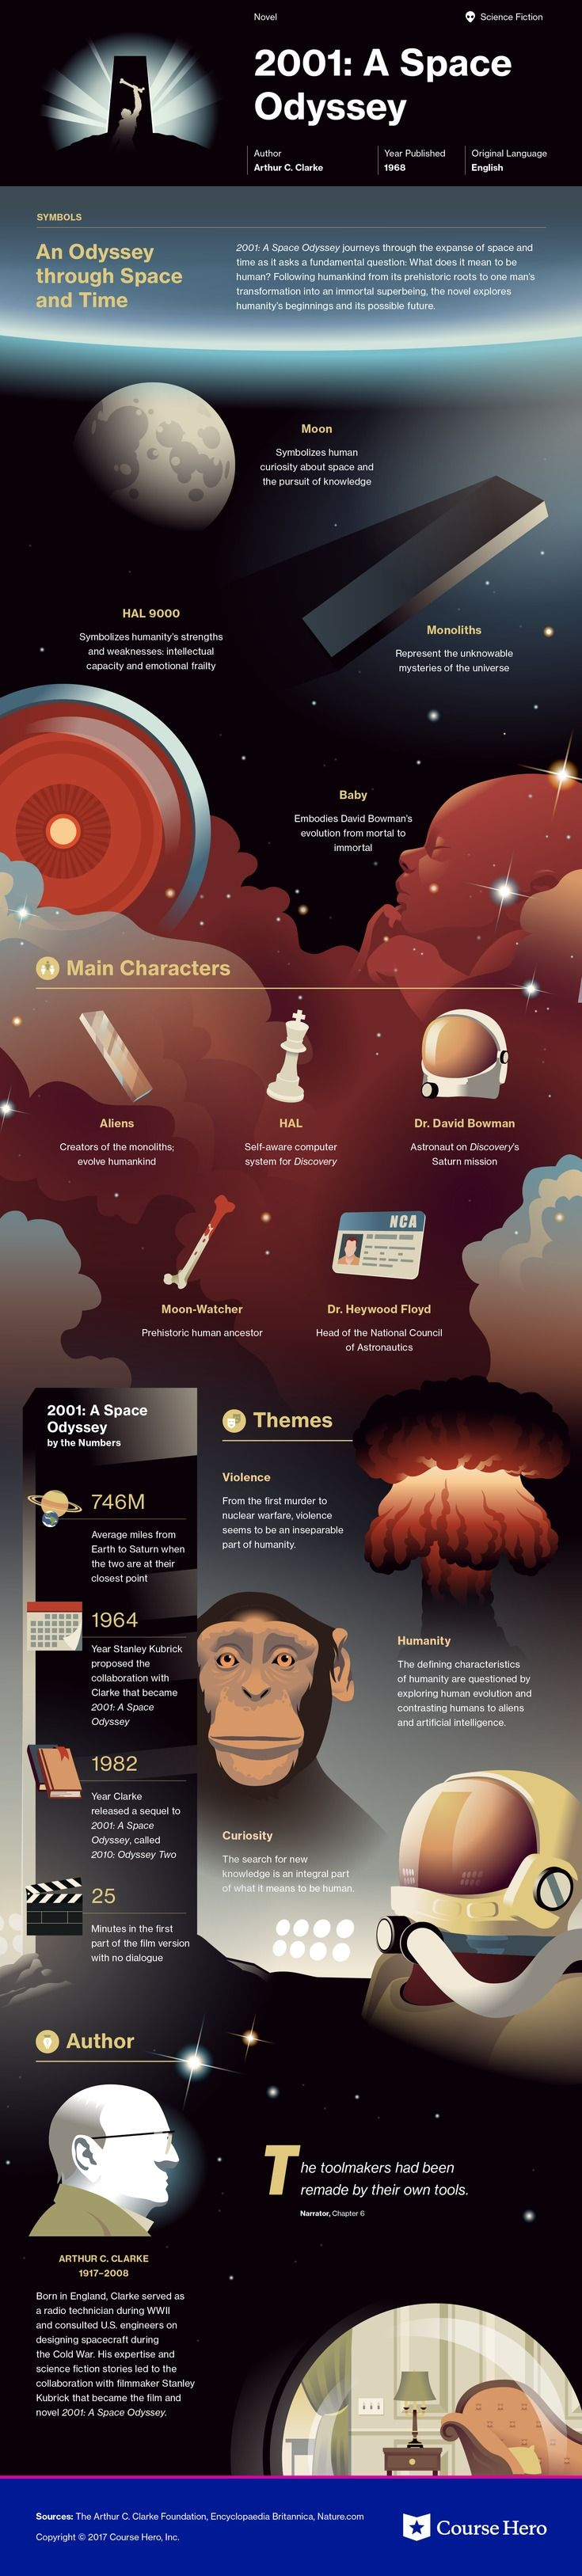 This @CourseHero infographic on 2001: A Space Odyssey is both visually stunning and informative!